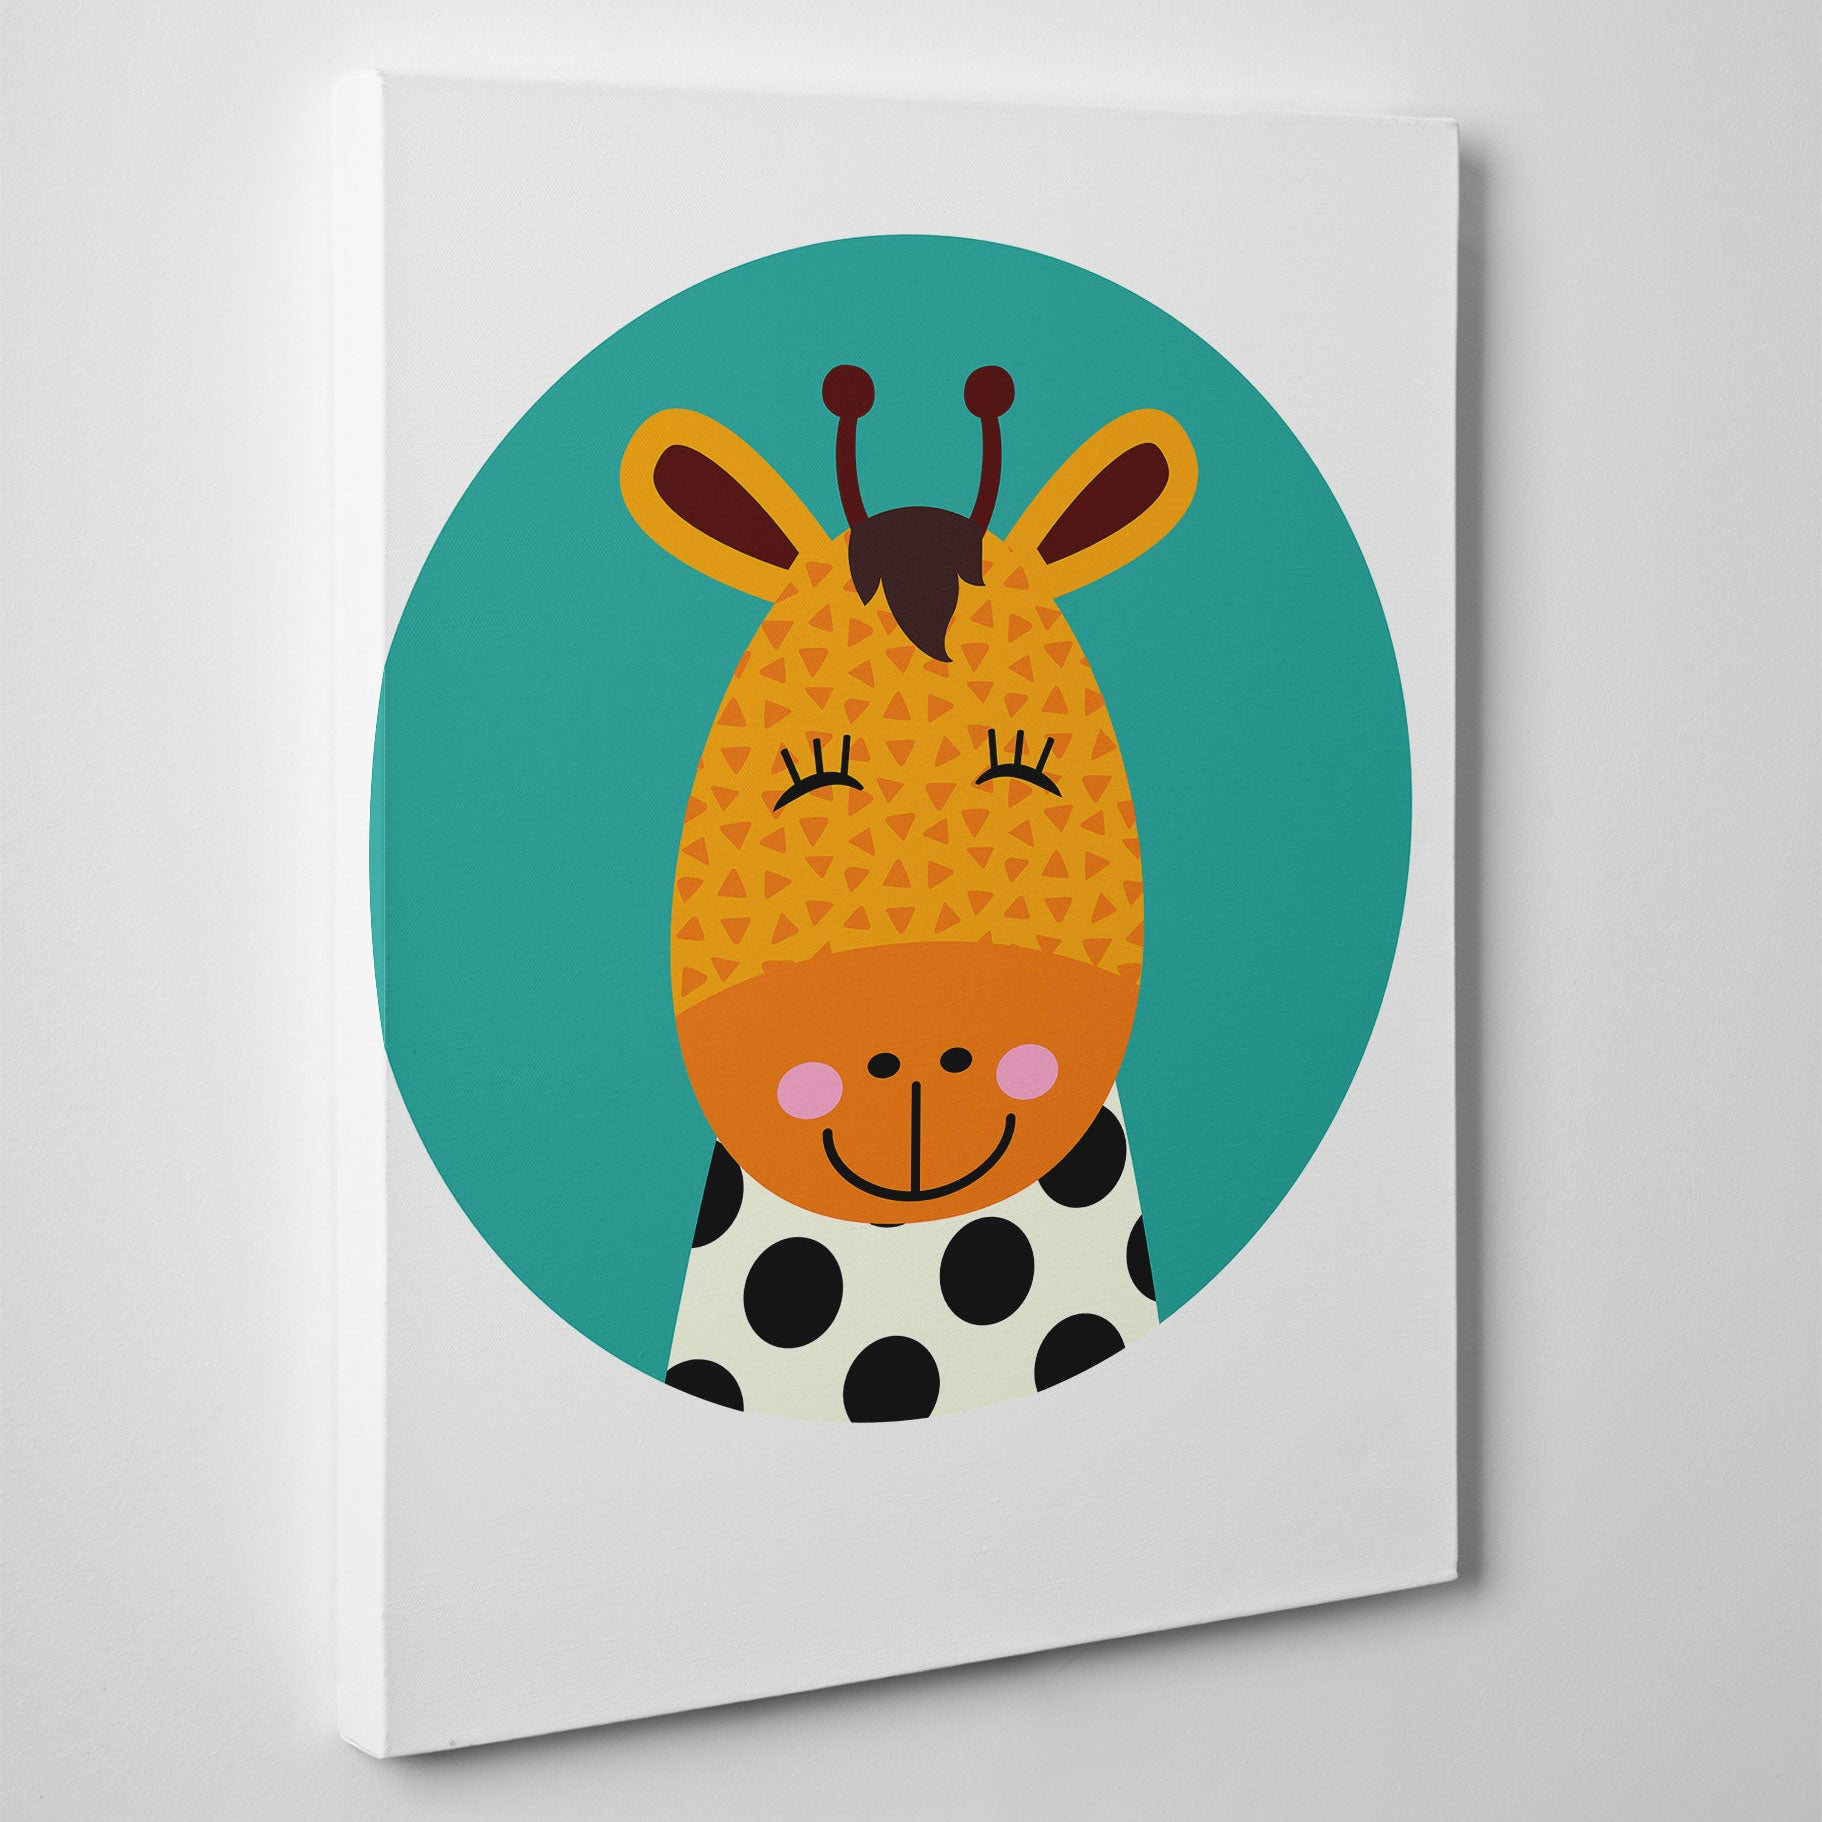 Nursery canvas print with a smiley giraffe in a blue circle - side view